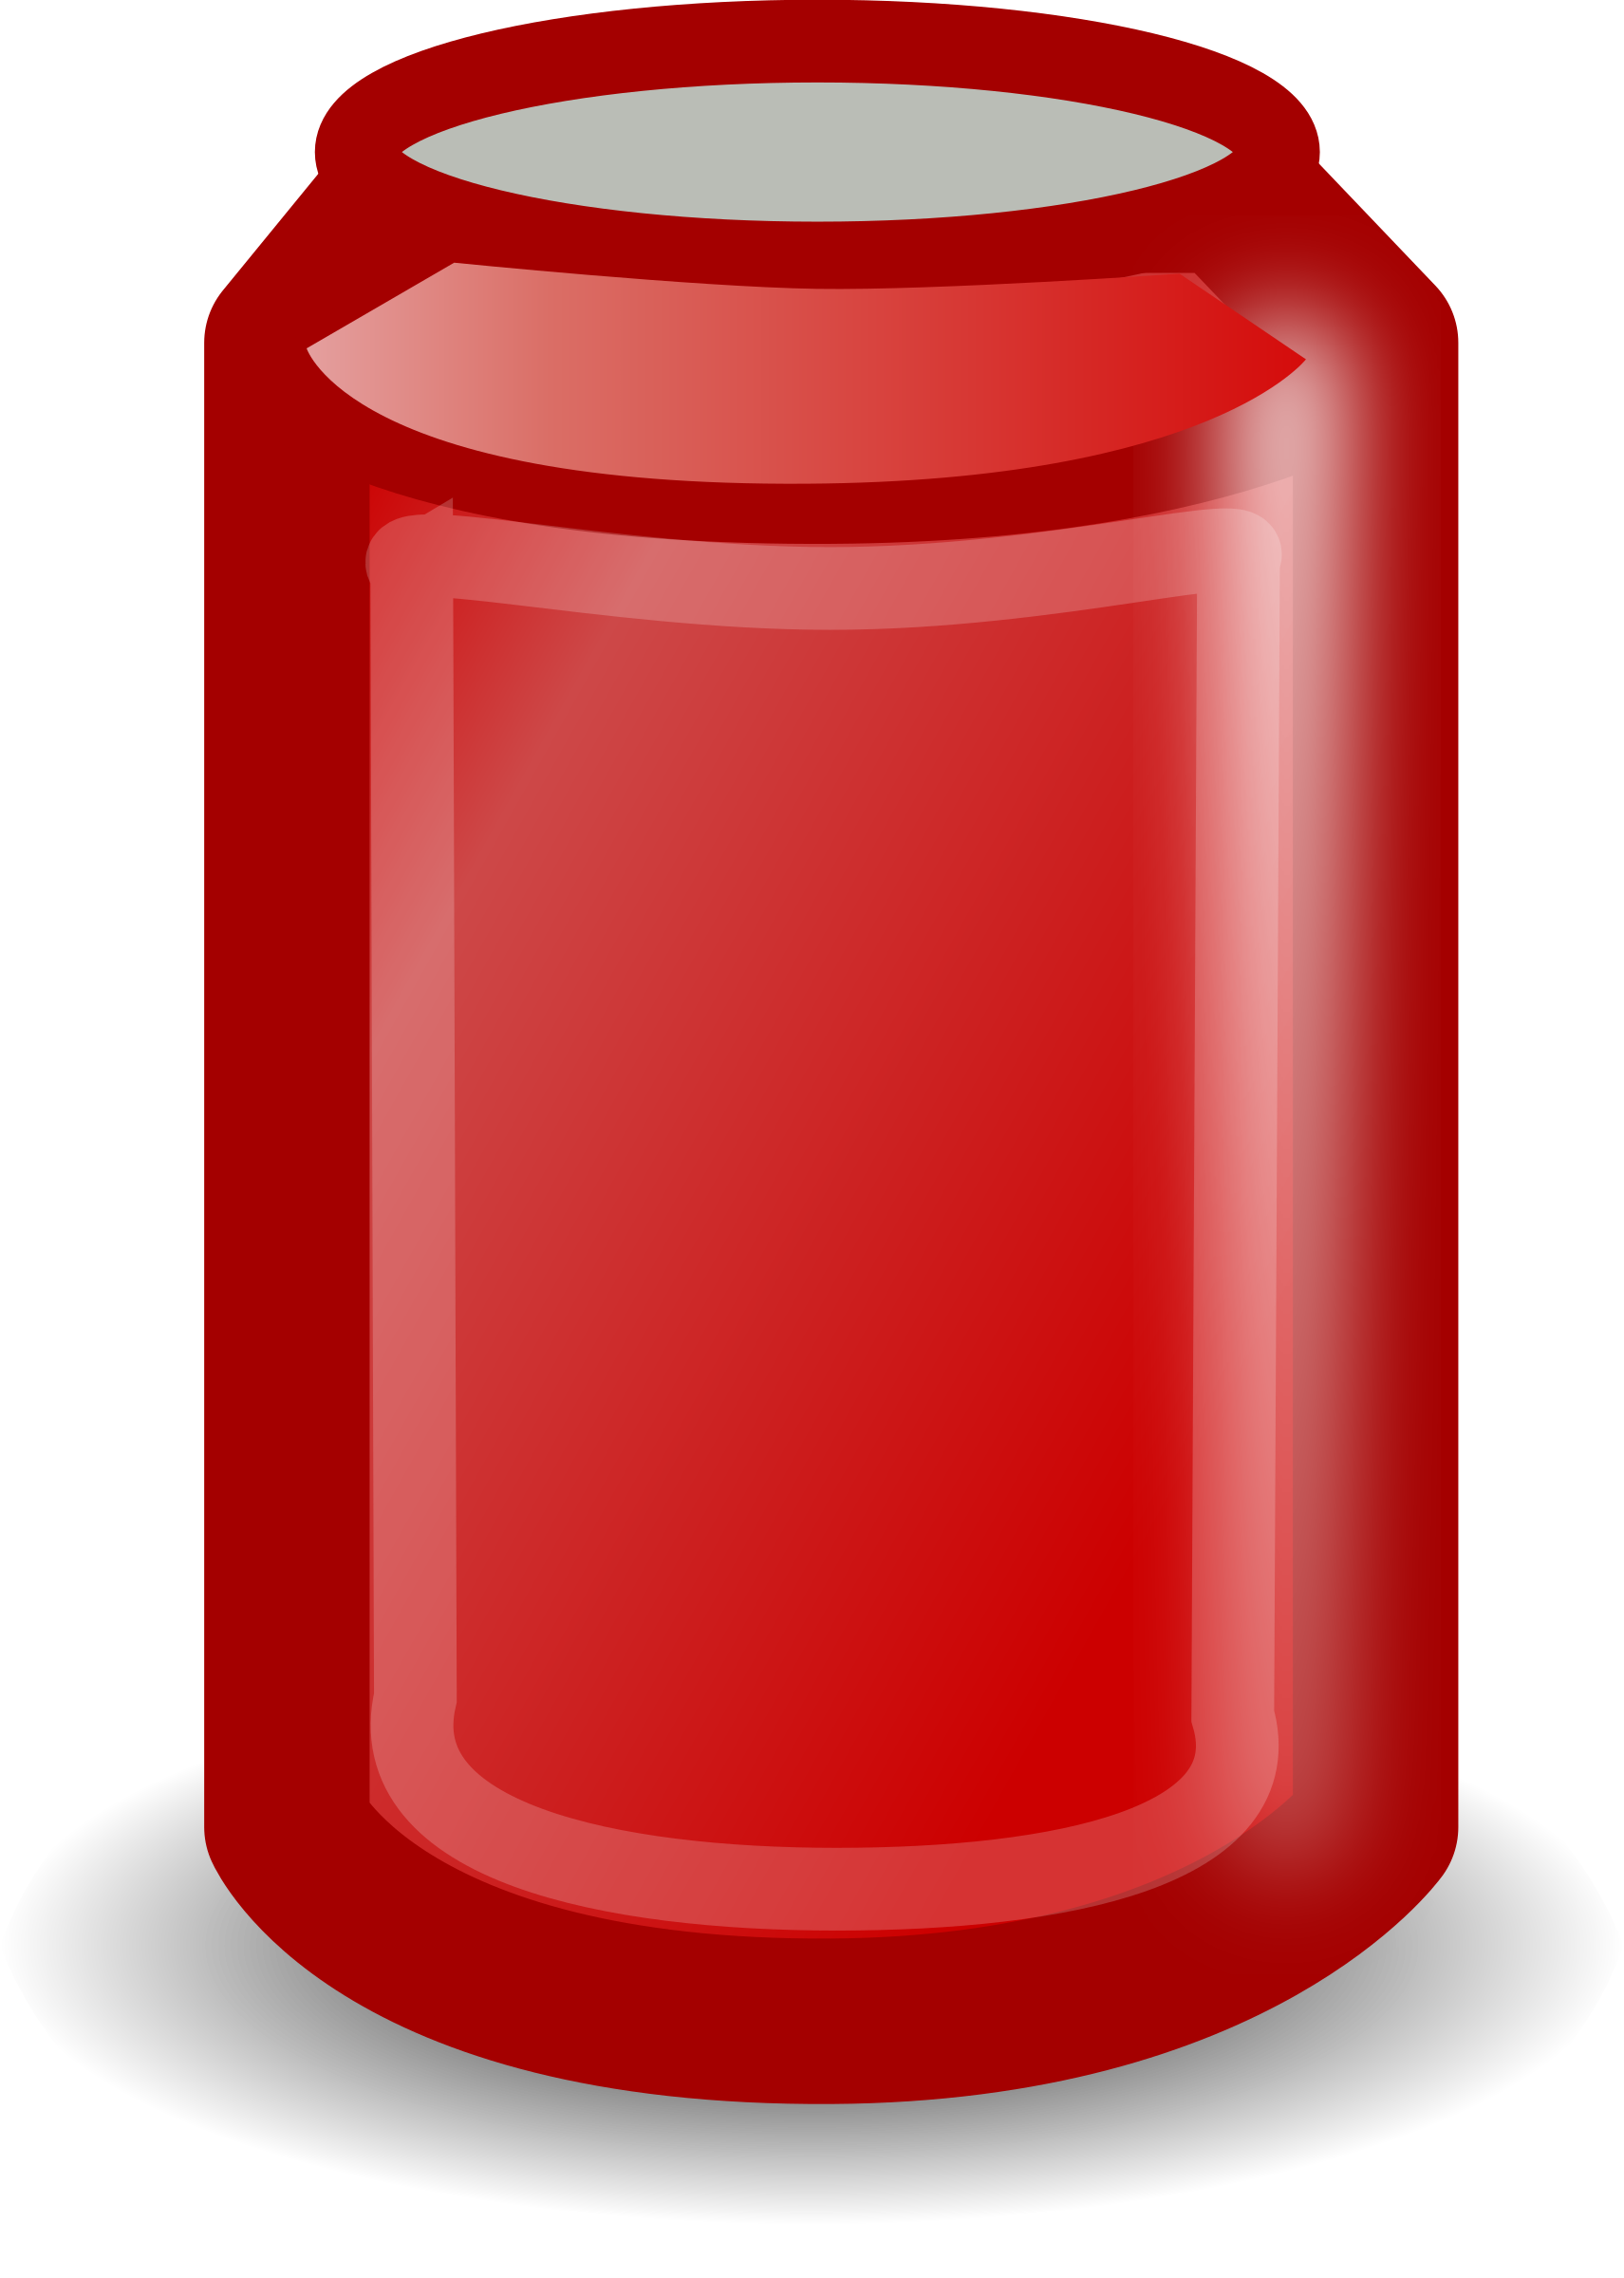 Red can by b.gaultier